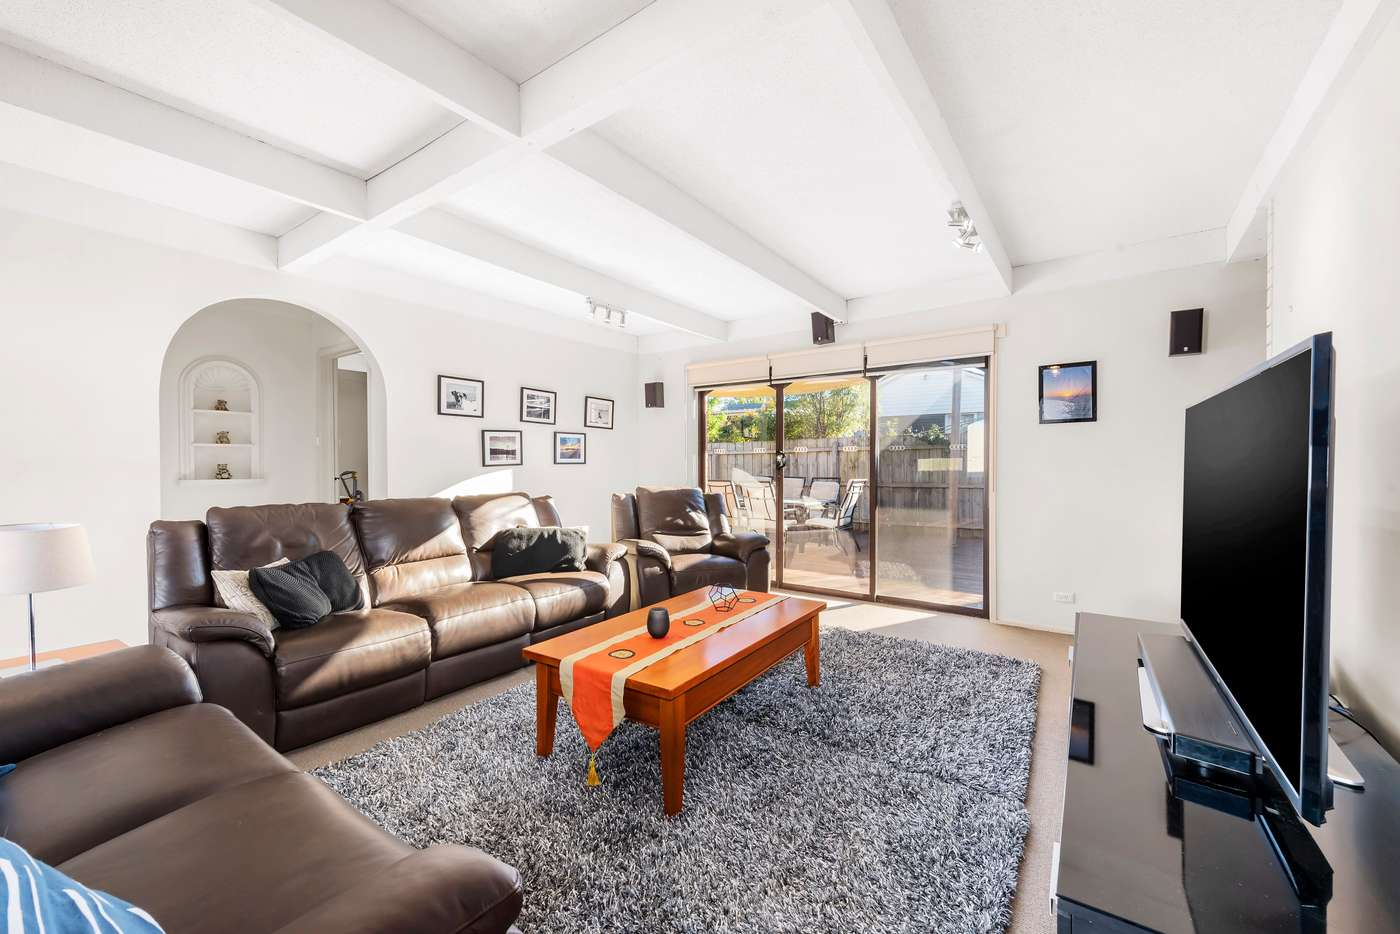 Fifth view of Homely house listing, 18 Merrill Street, Mulgrave VIC 3170